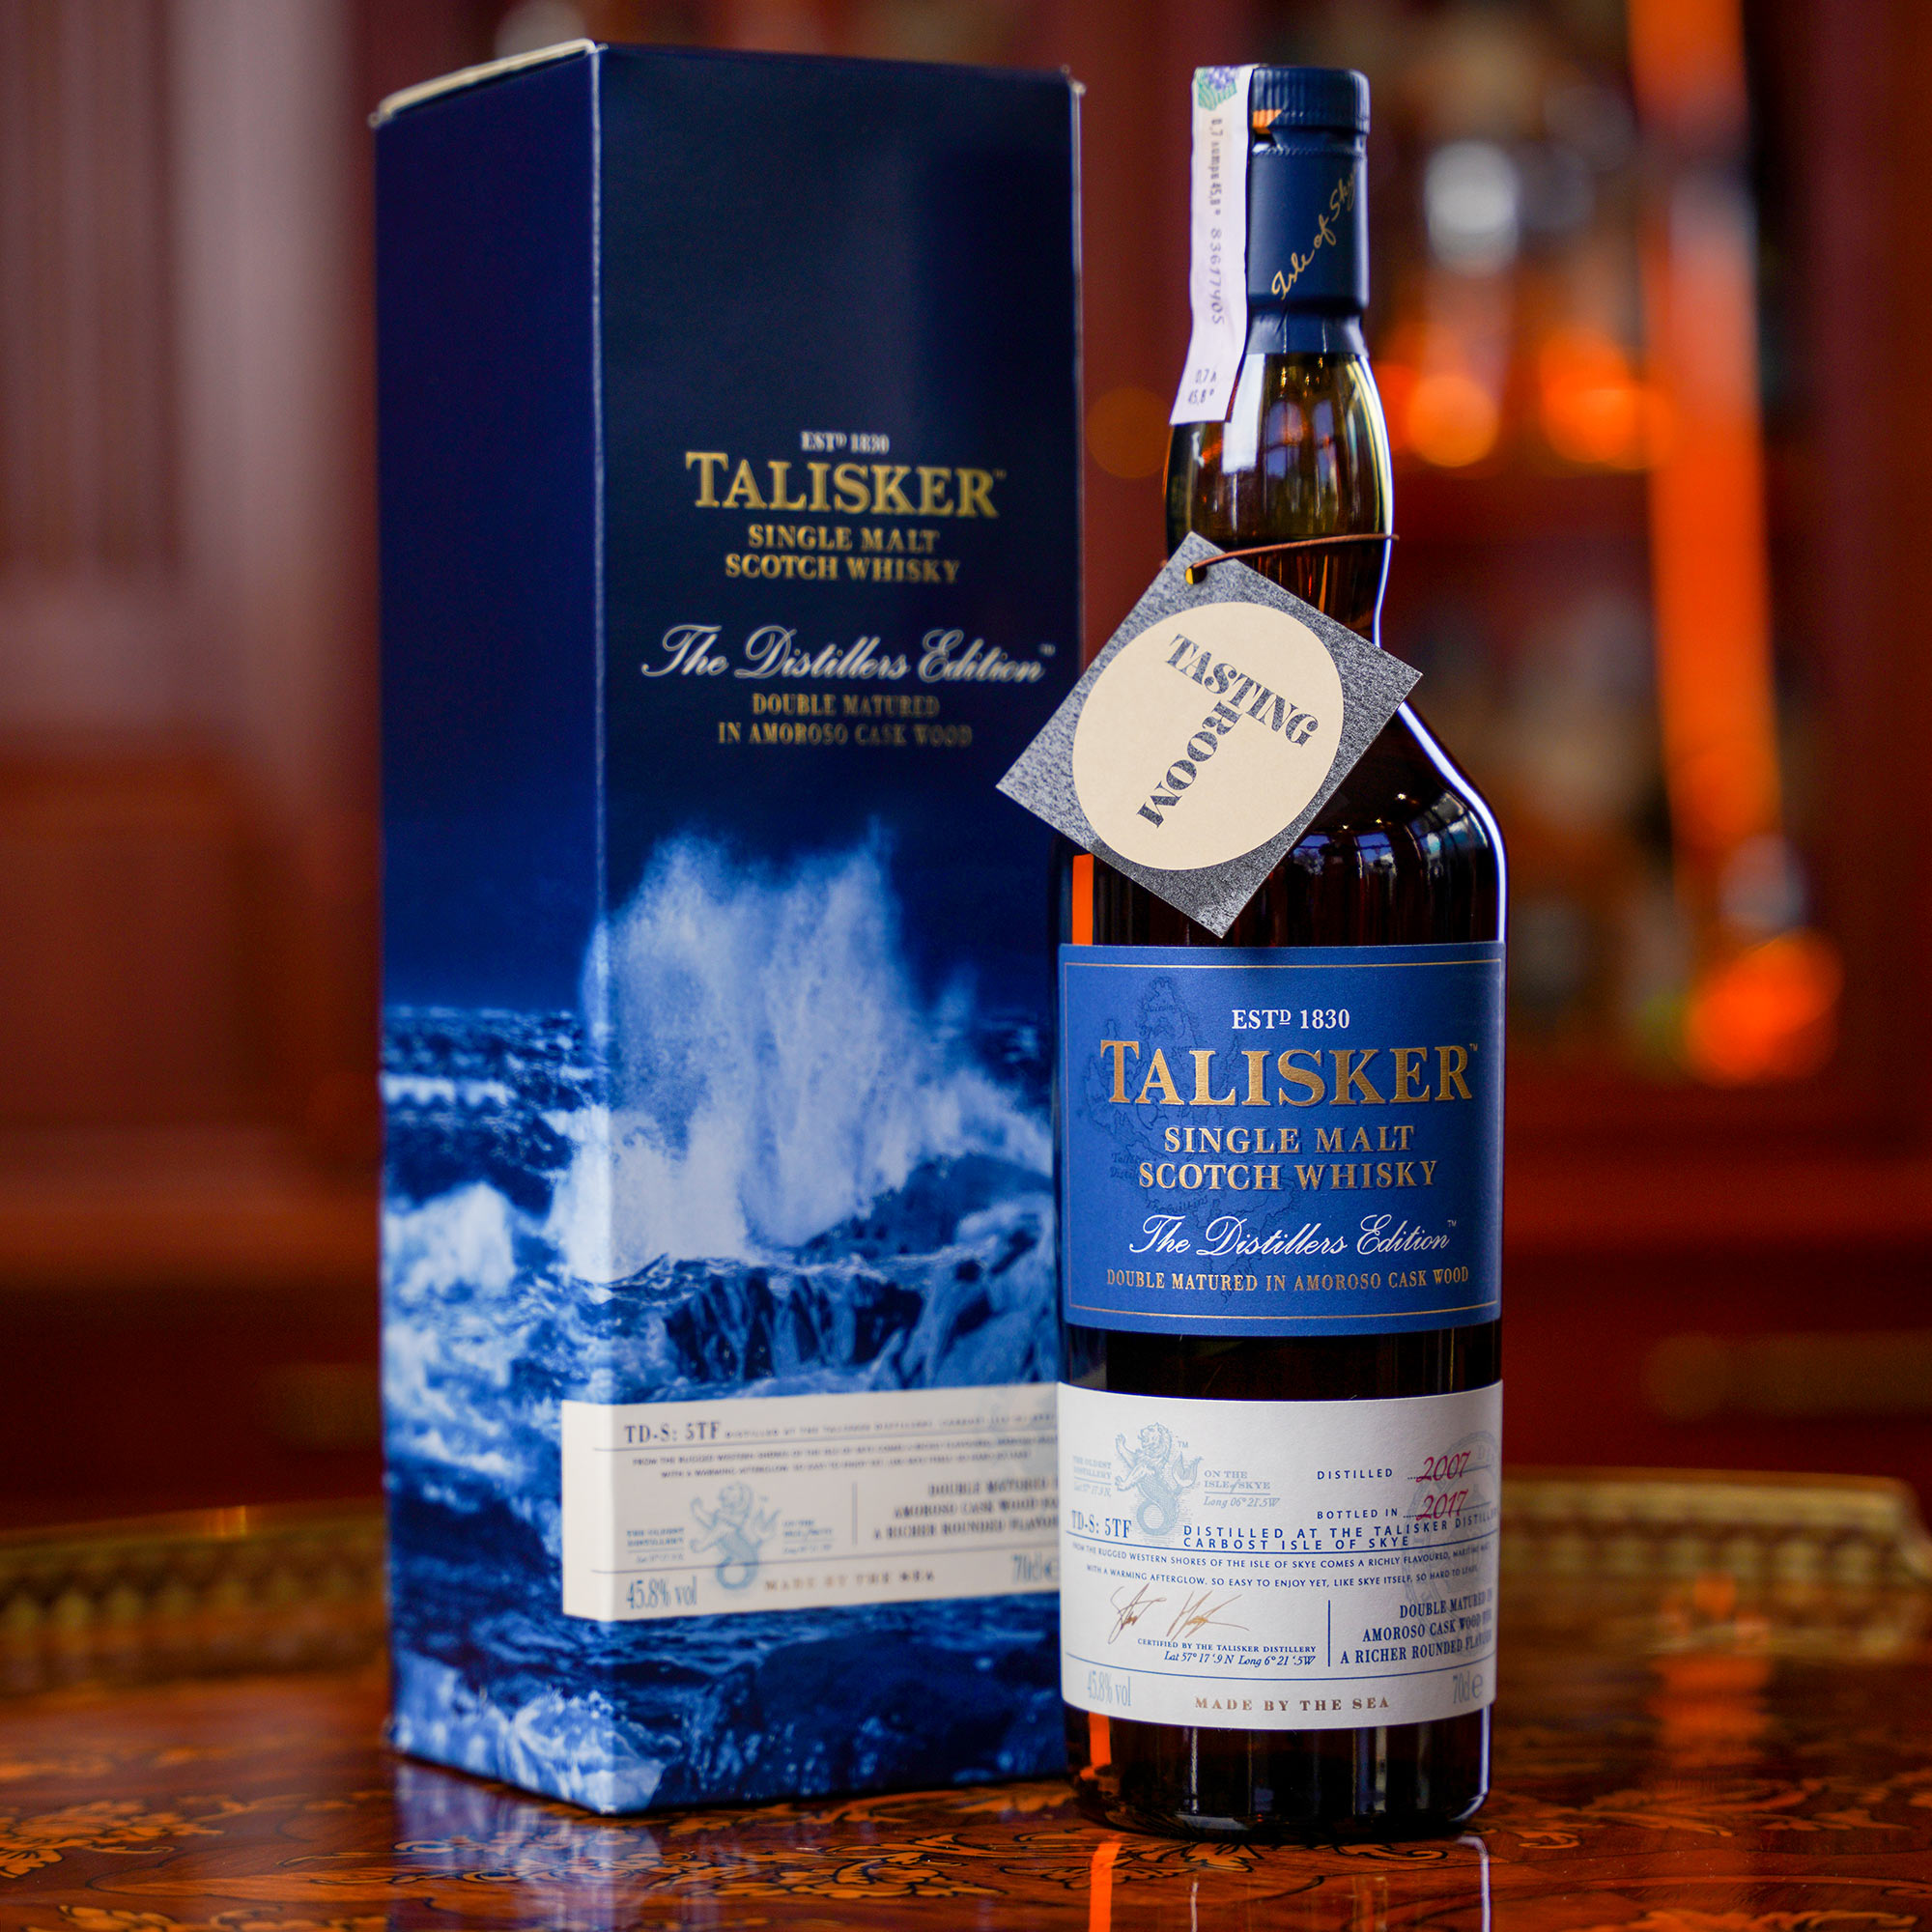 Talisker Distillers Edition 2017 /Талискер Дистилърс Едишън 2017